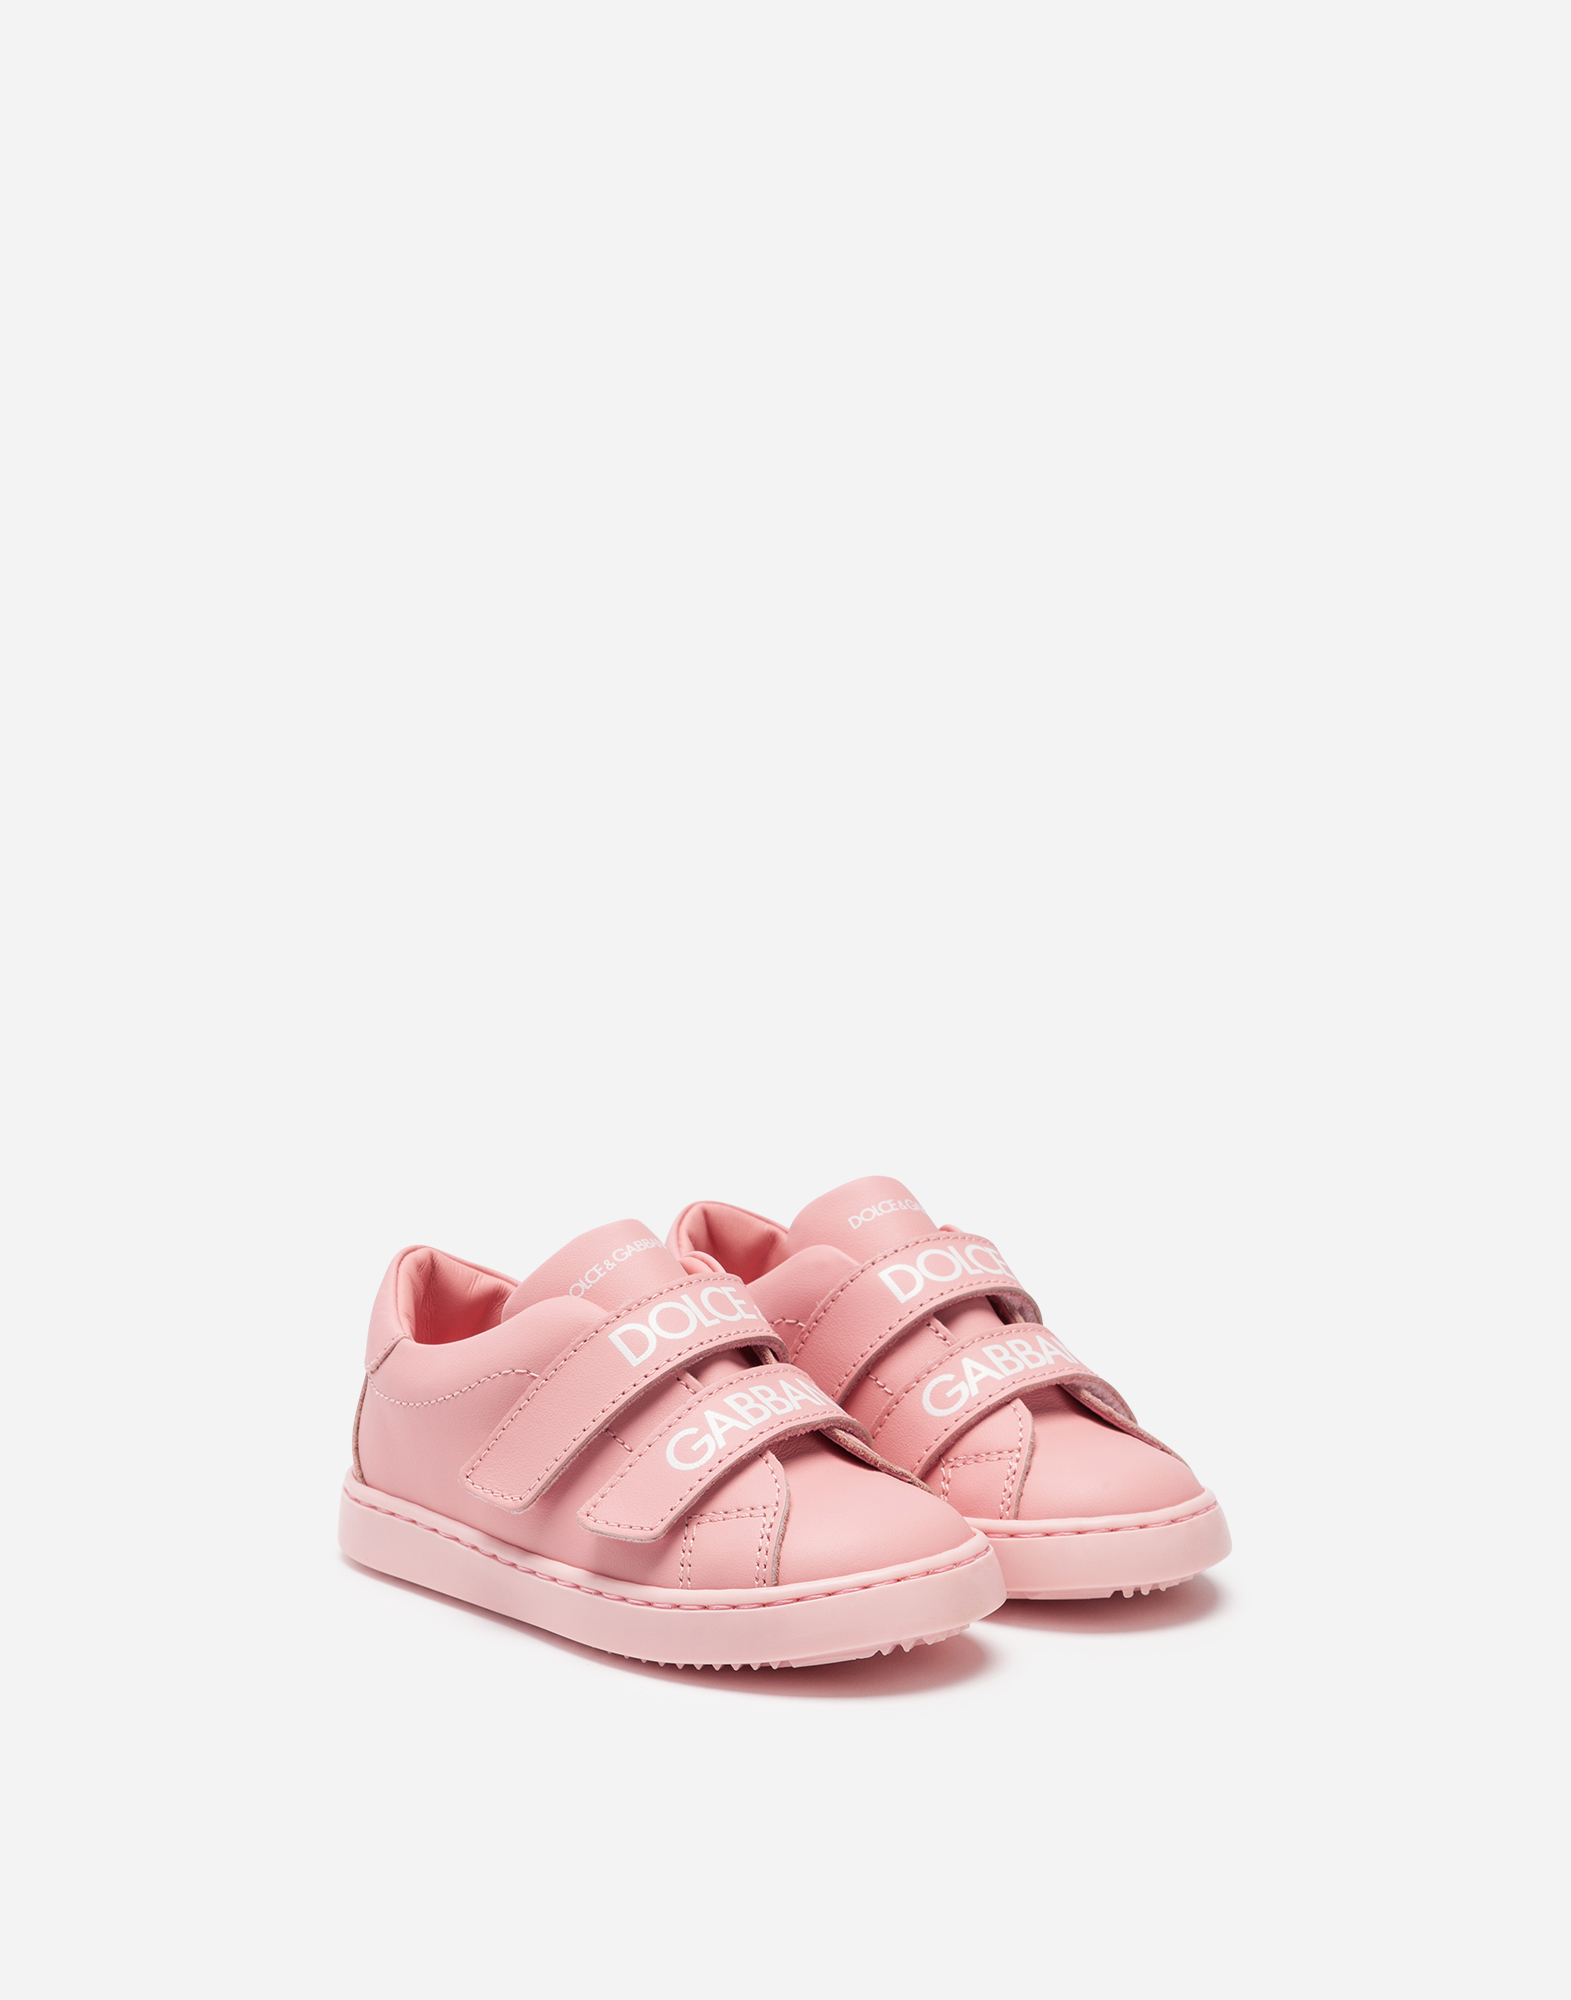 Dolce & Gabbana FIRST STEPS PORTOFINO SNEAKERS IN BRANDED NAPPA LEATHER